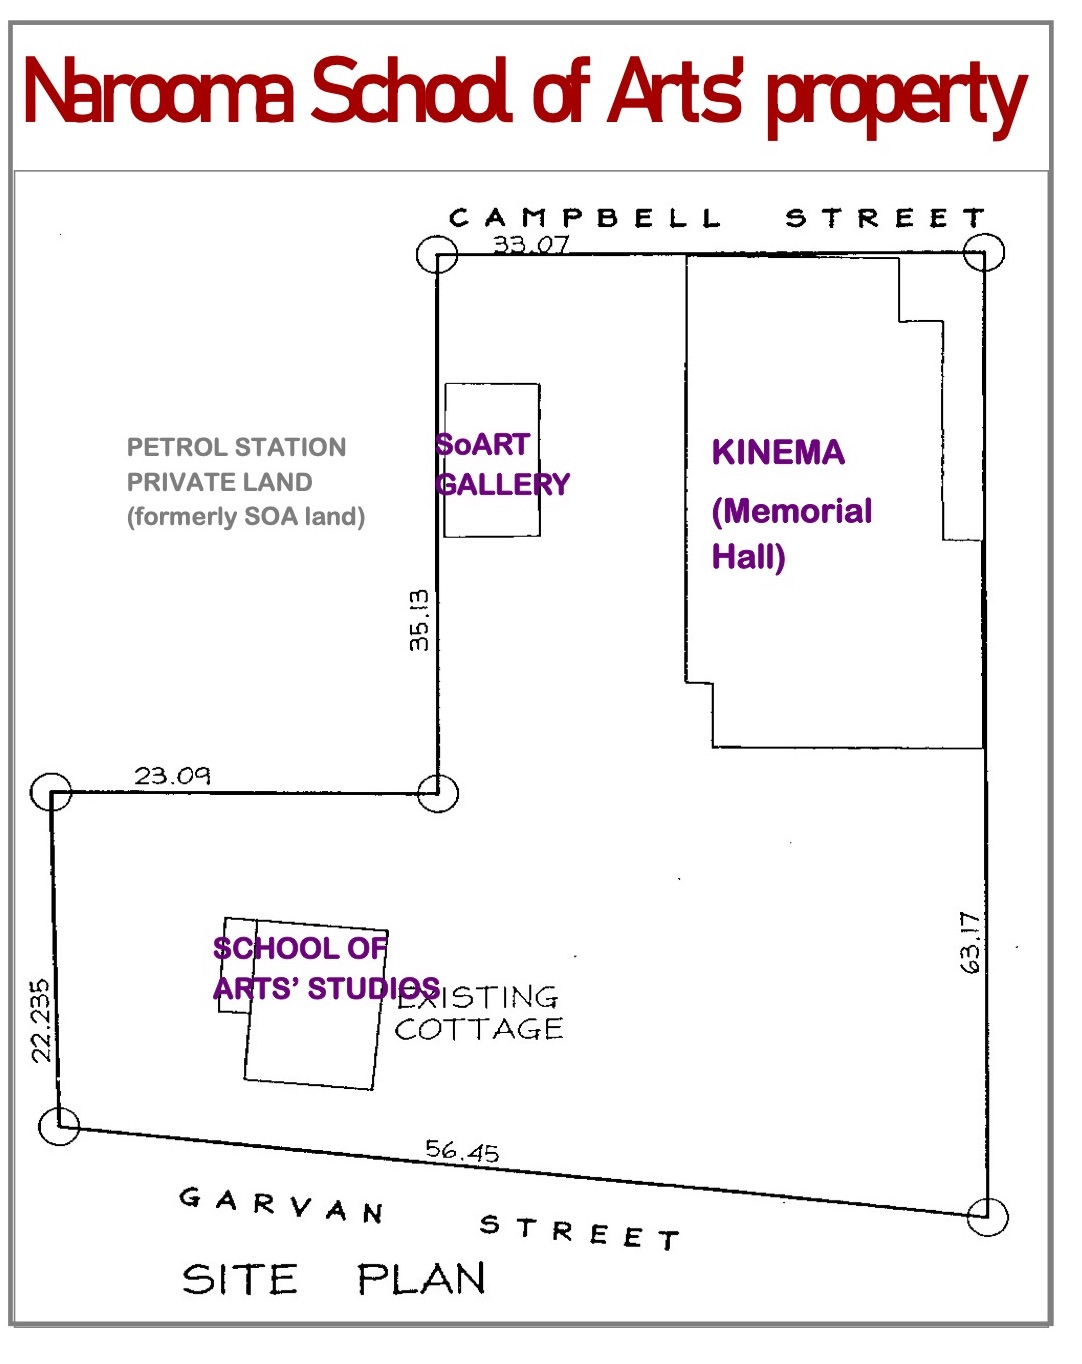 Site Plan of Narooma School of Arts Property